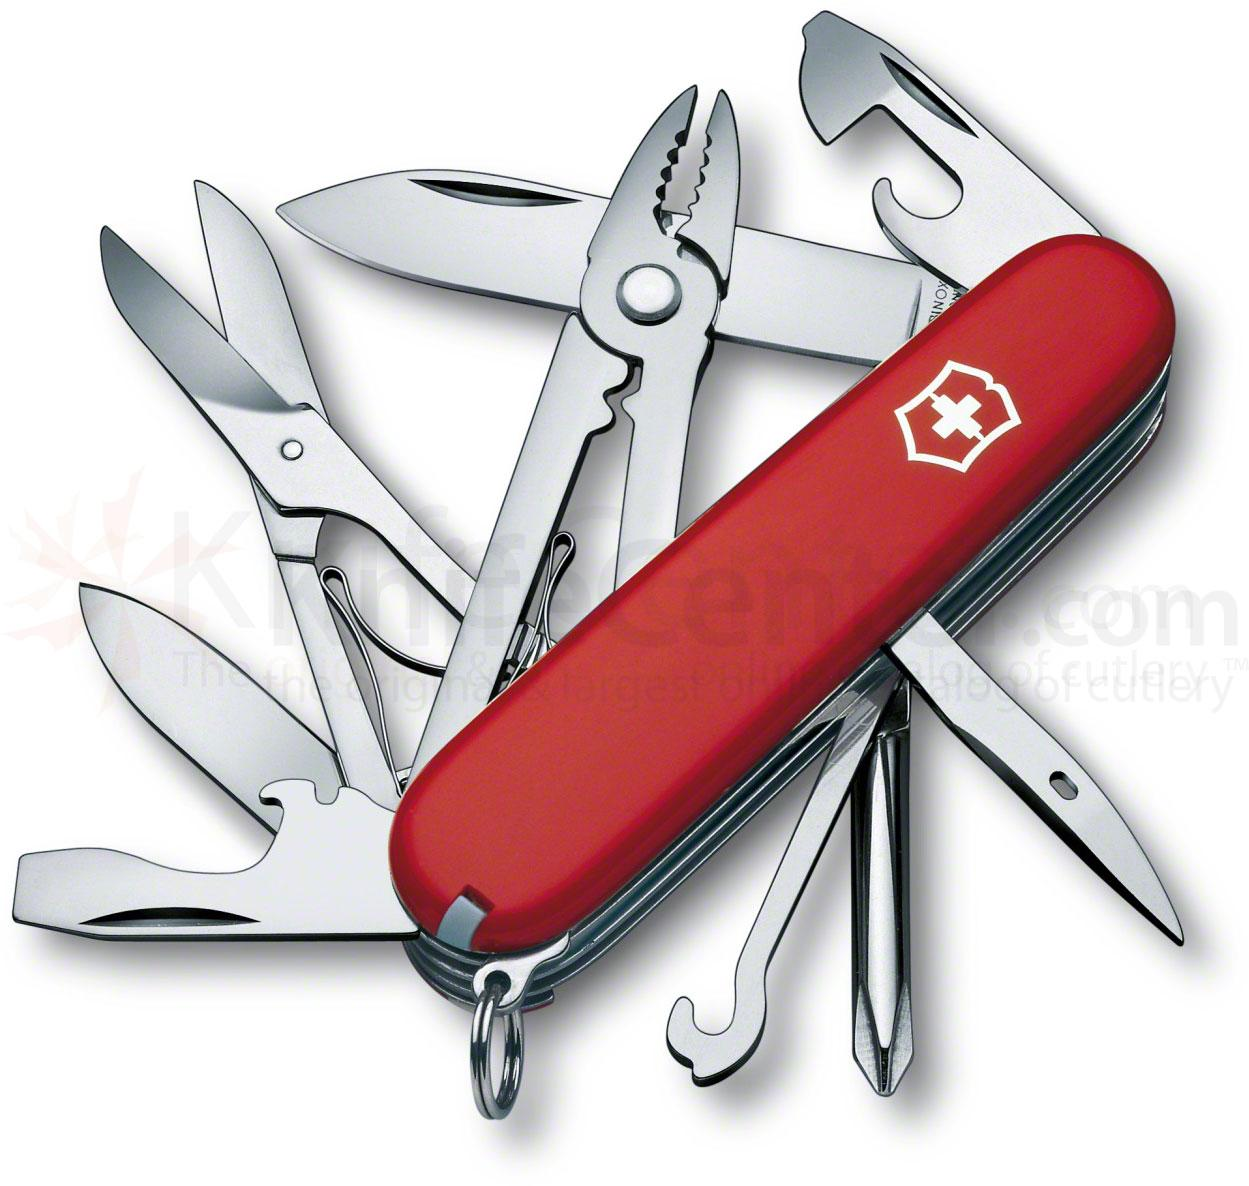 Victorinox Swiss Army Deluxe Tinker Multi-Tool, 3-1/2 inch Red Handles